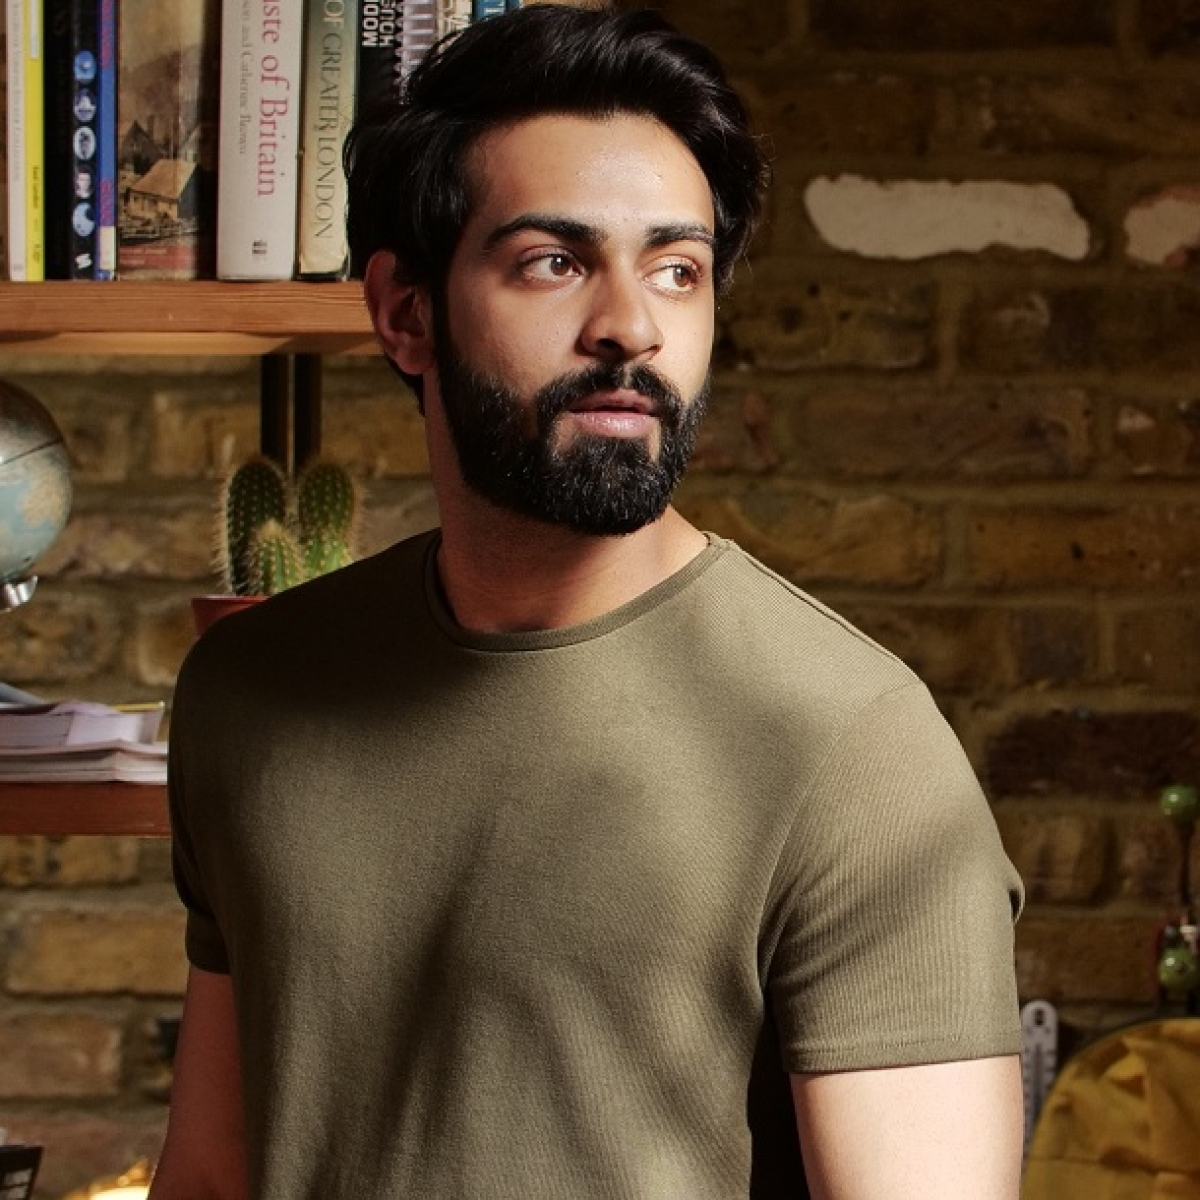 Debutant Anmol Thakeria Dhillon shares his experience of meeting Sanjay Leela Bhansali for the first time